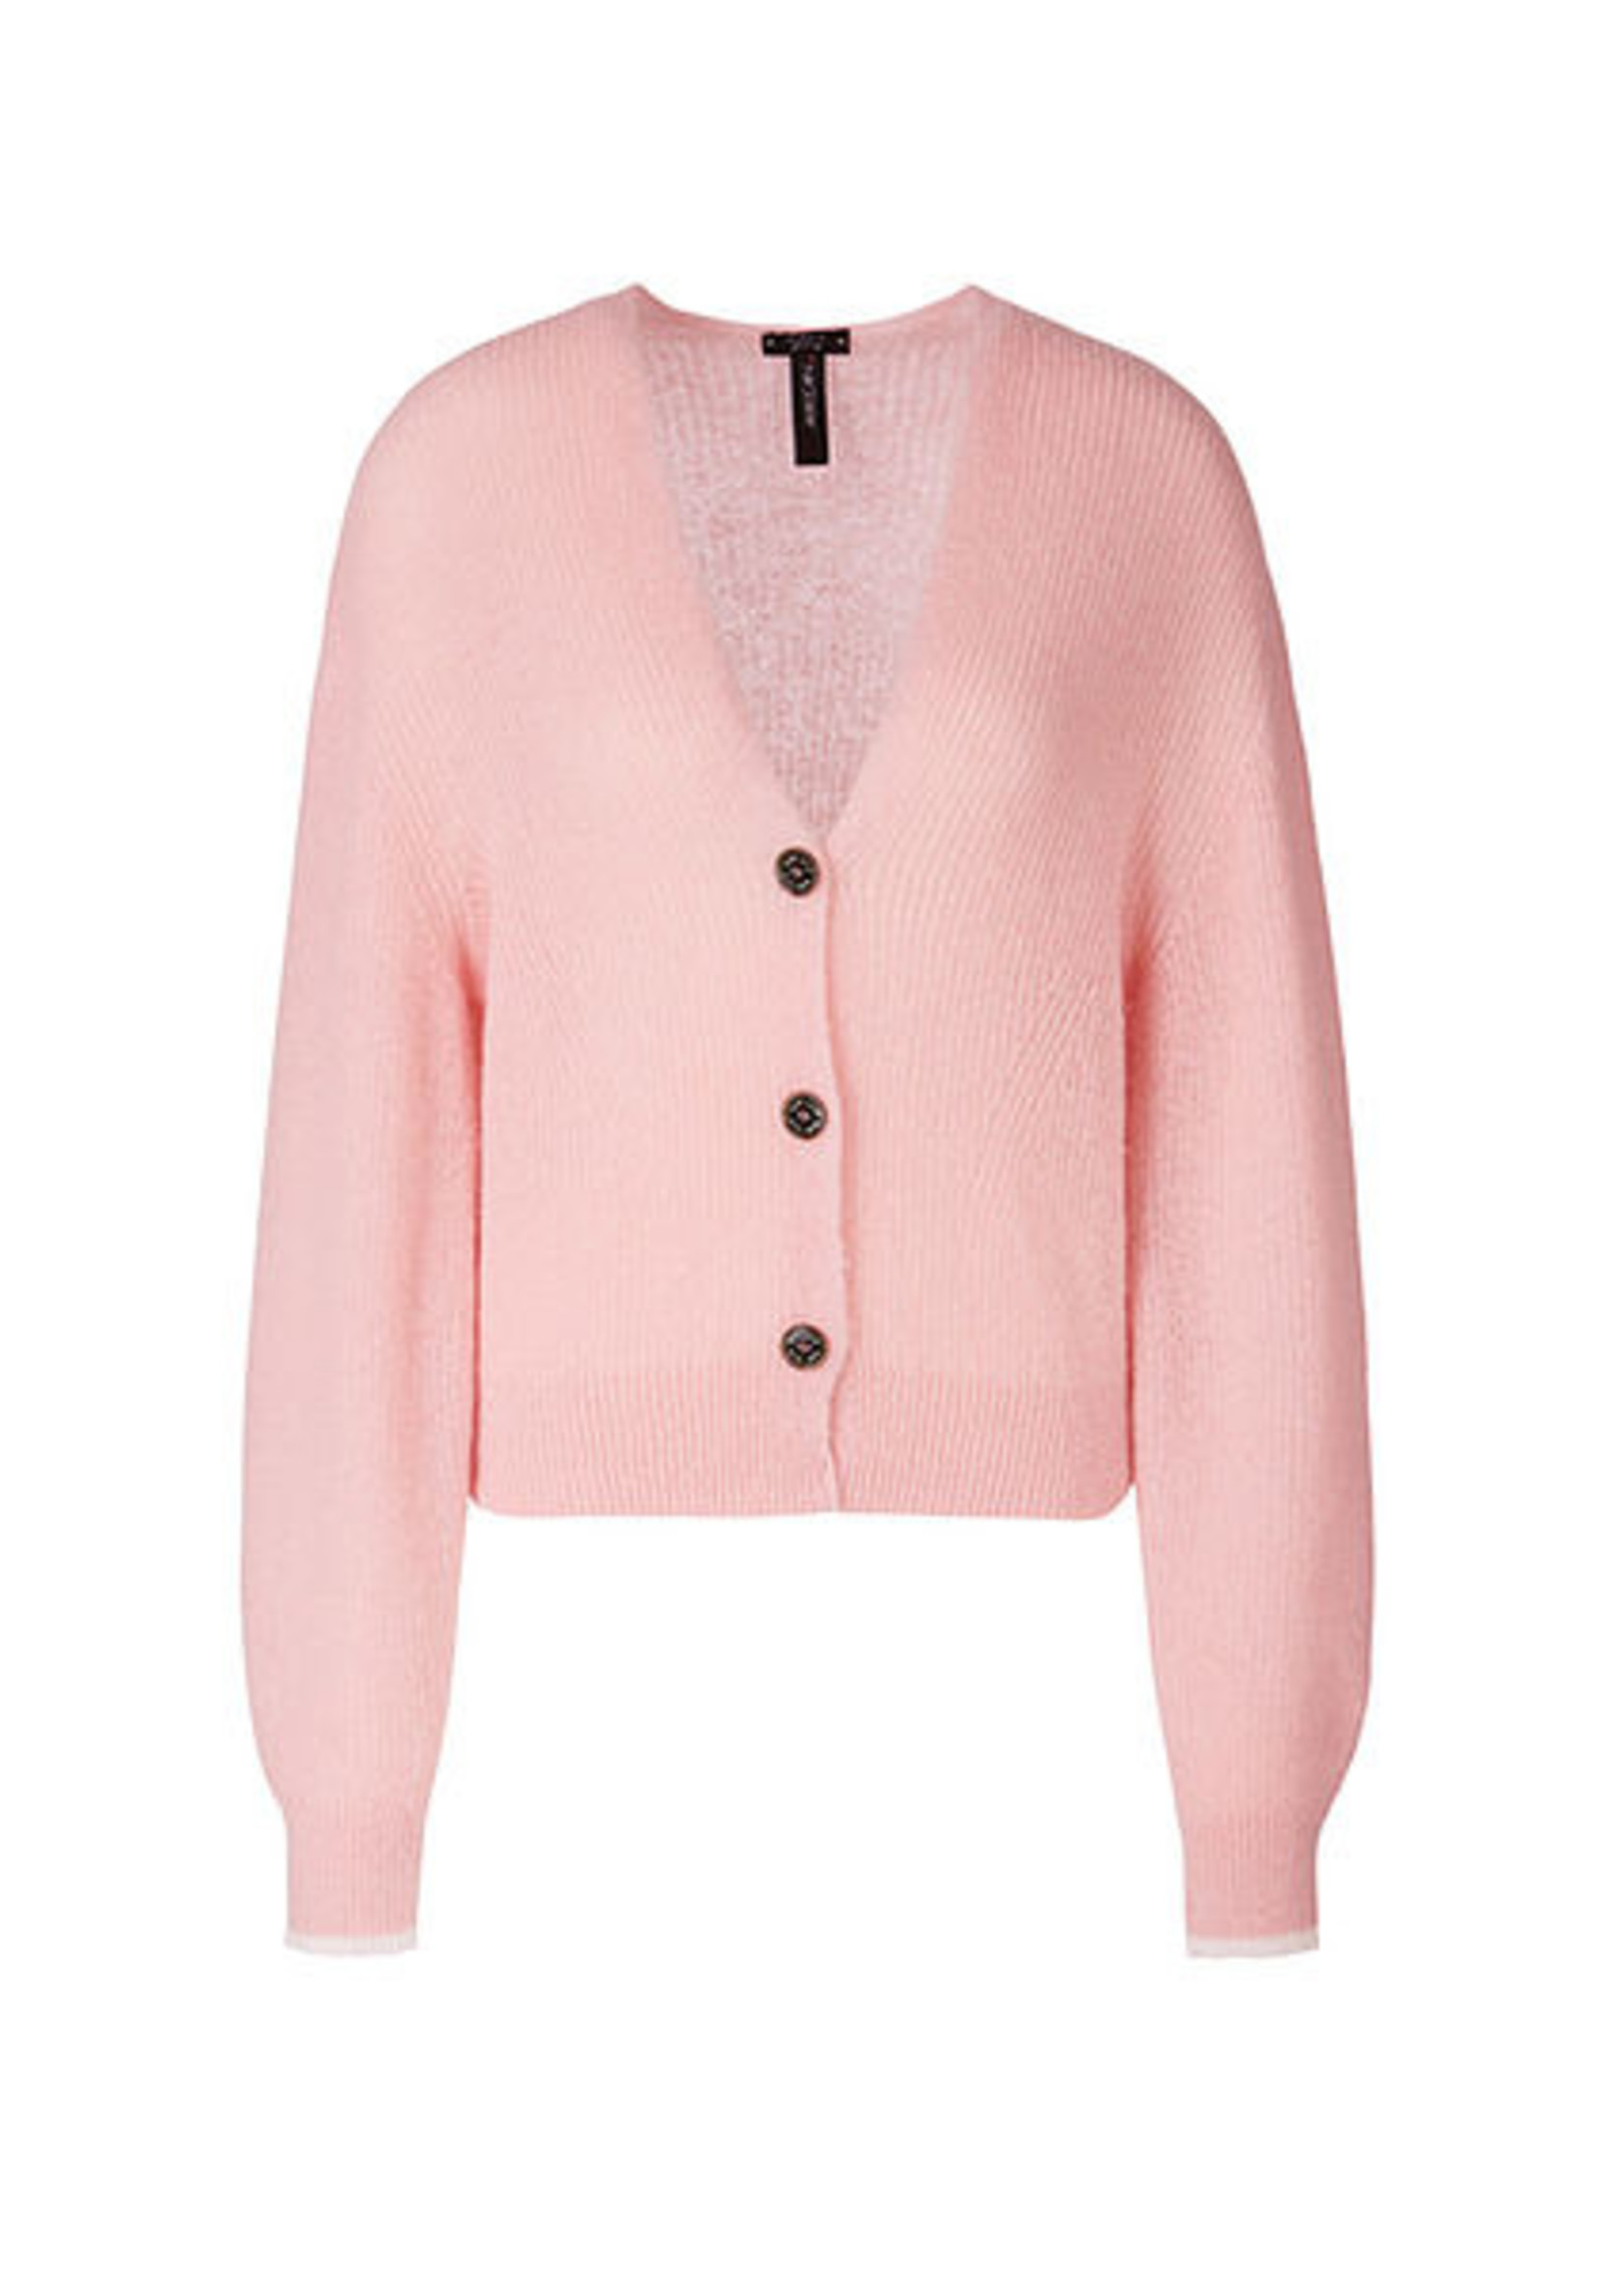 Marccain Sports Jack RS 31.08 M04 coralblush